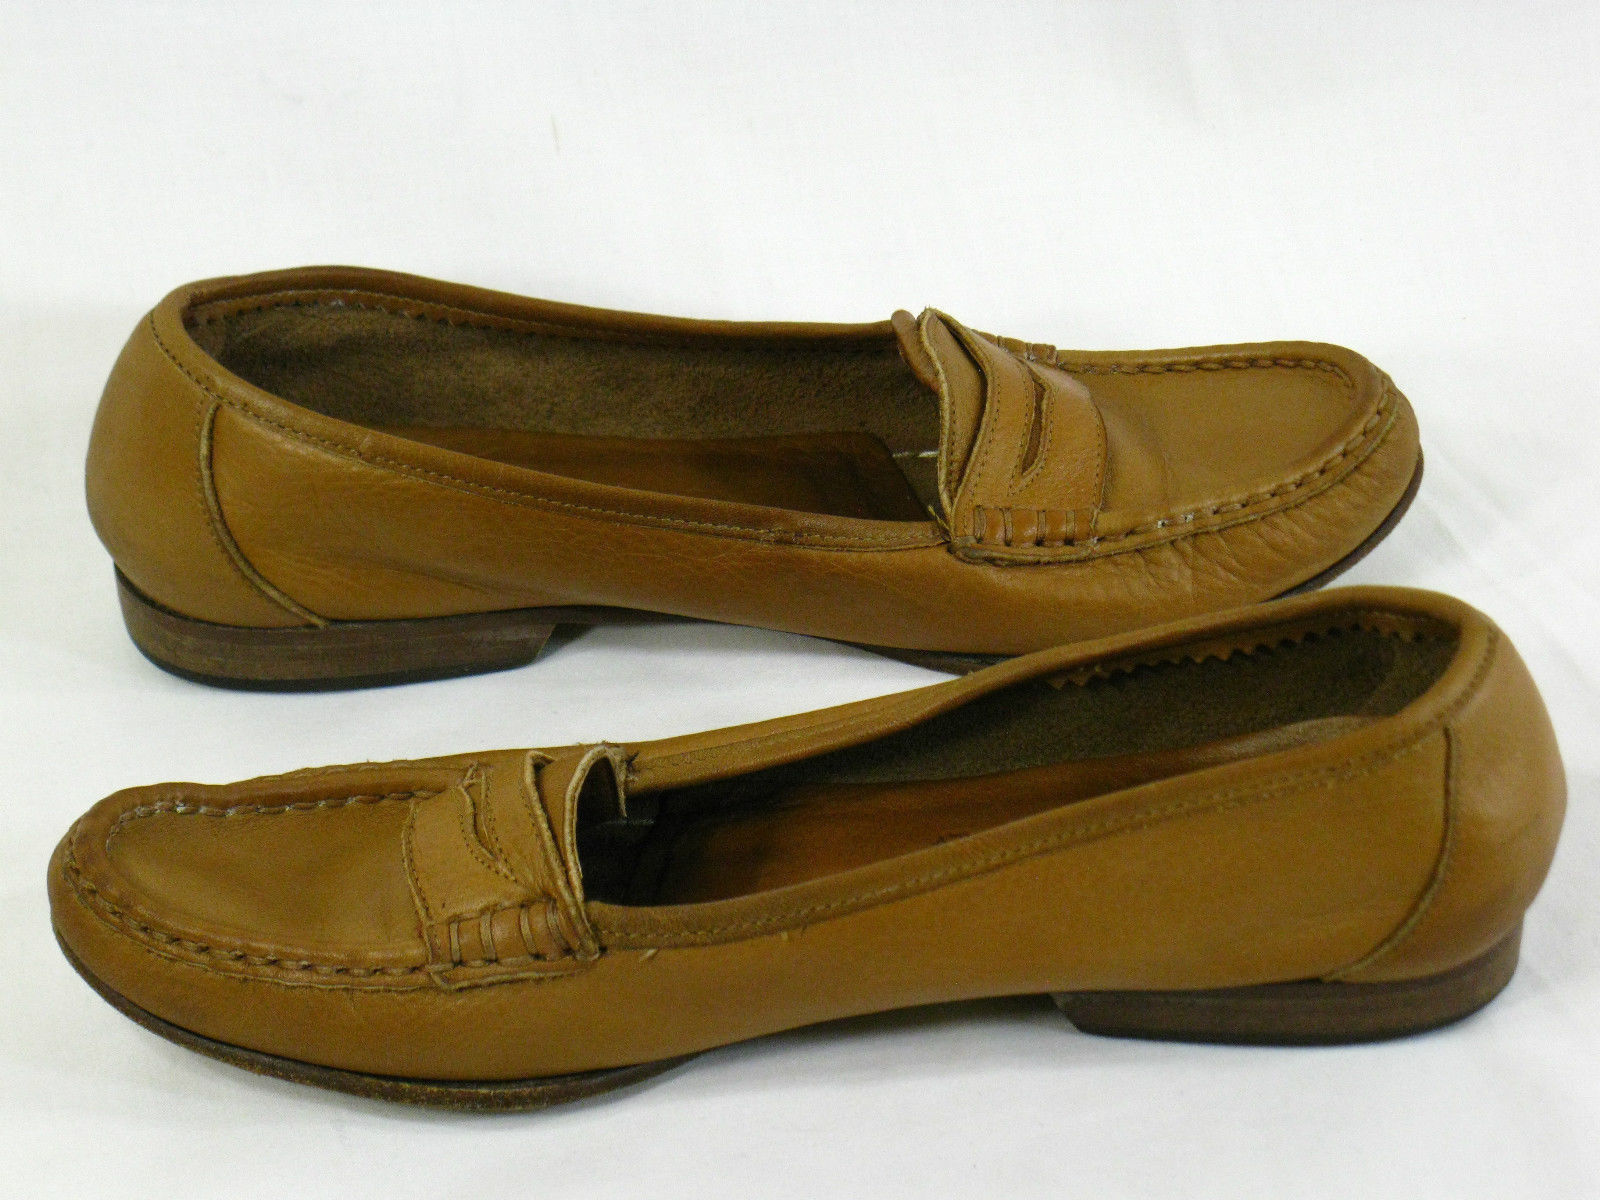 Bandolino Brown Leather Loafer Flats Size 6.5 M US Excellent Italy